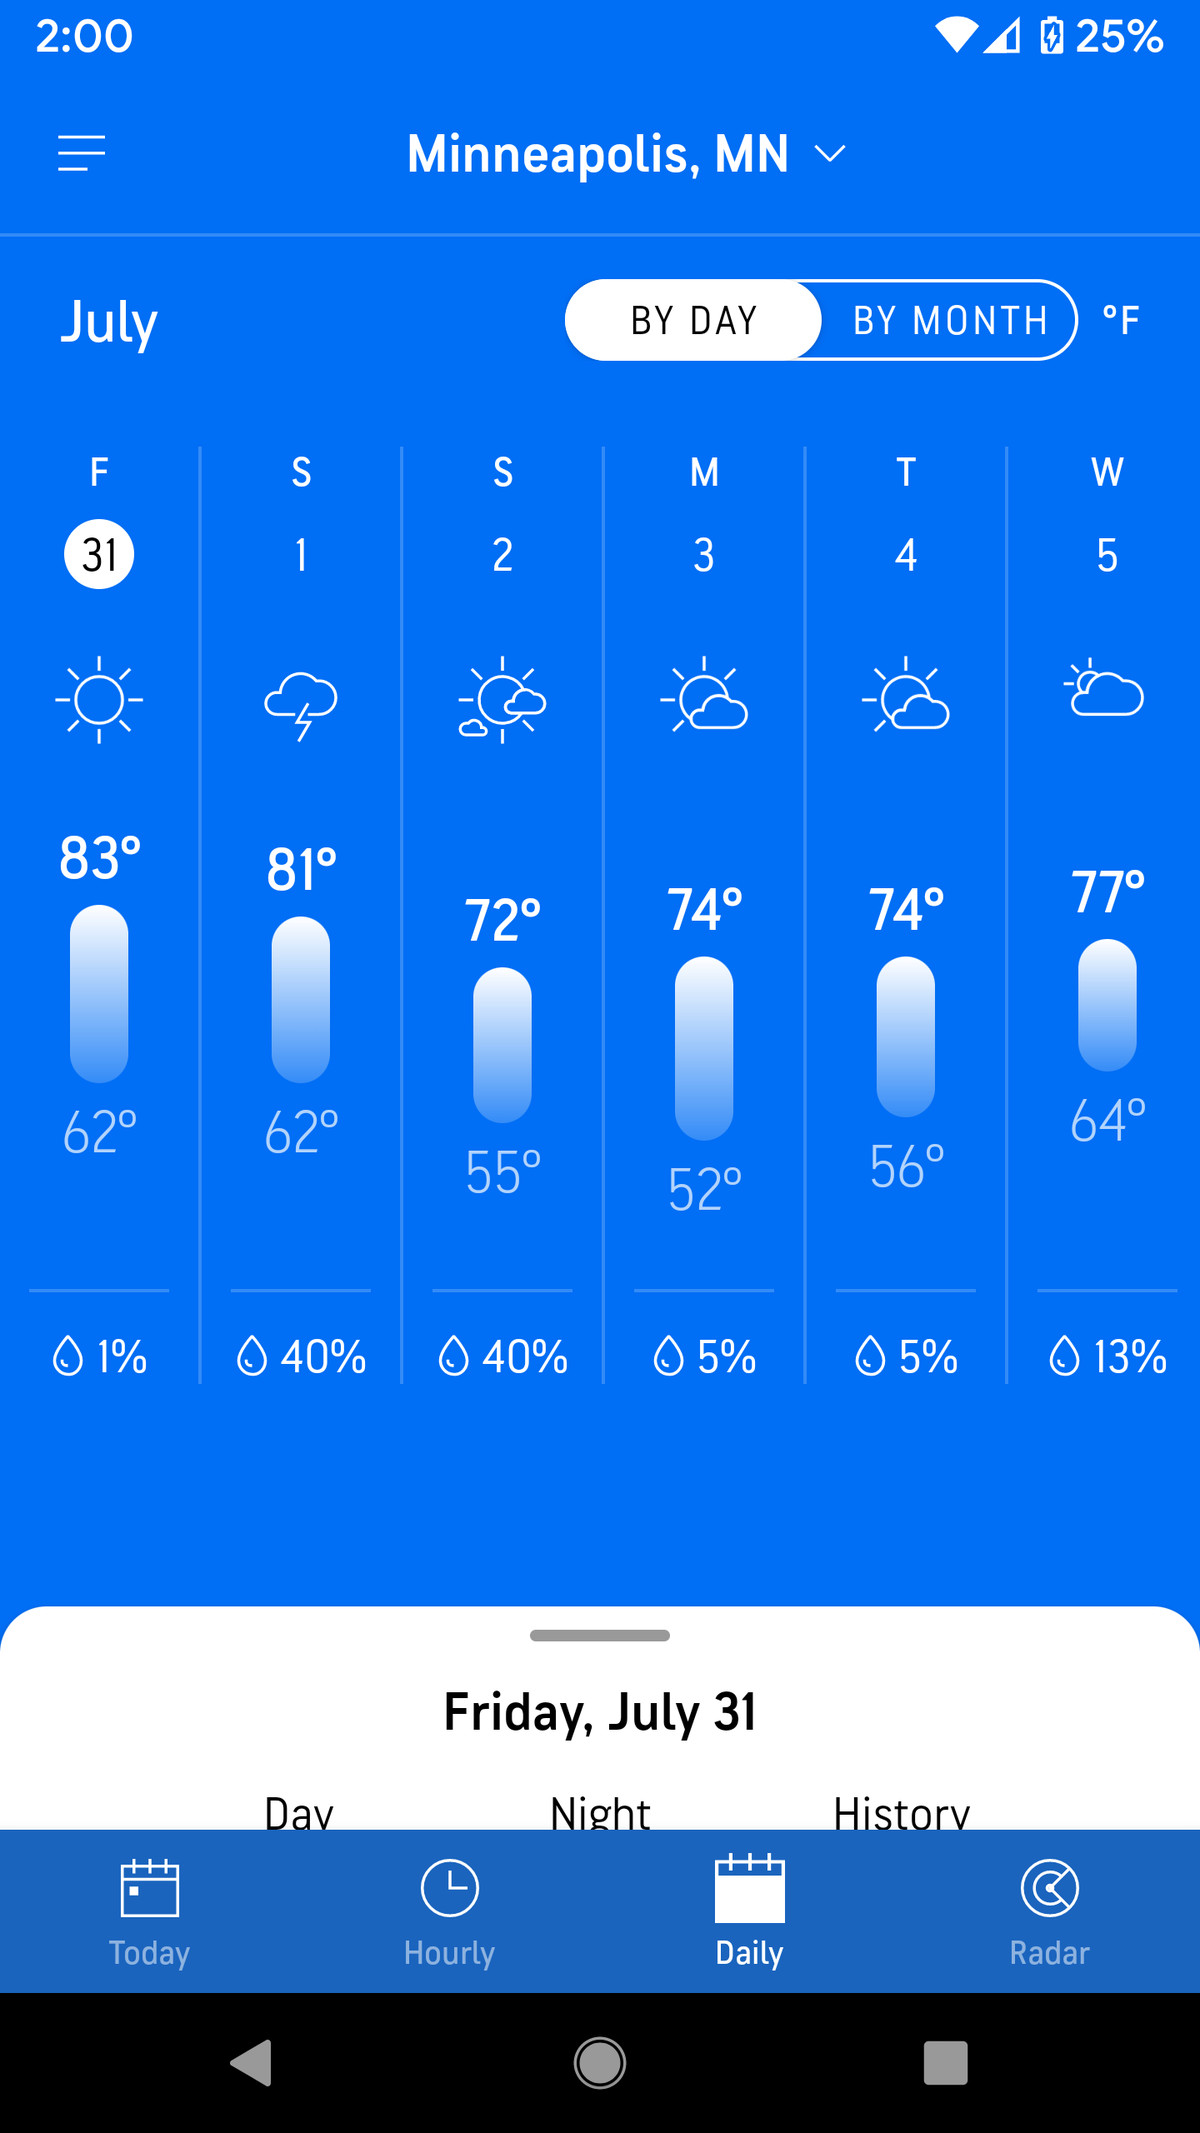 Tabs at the bottom give you a number of options for weather predictions.